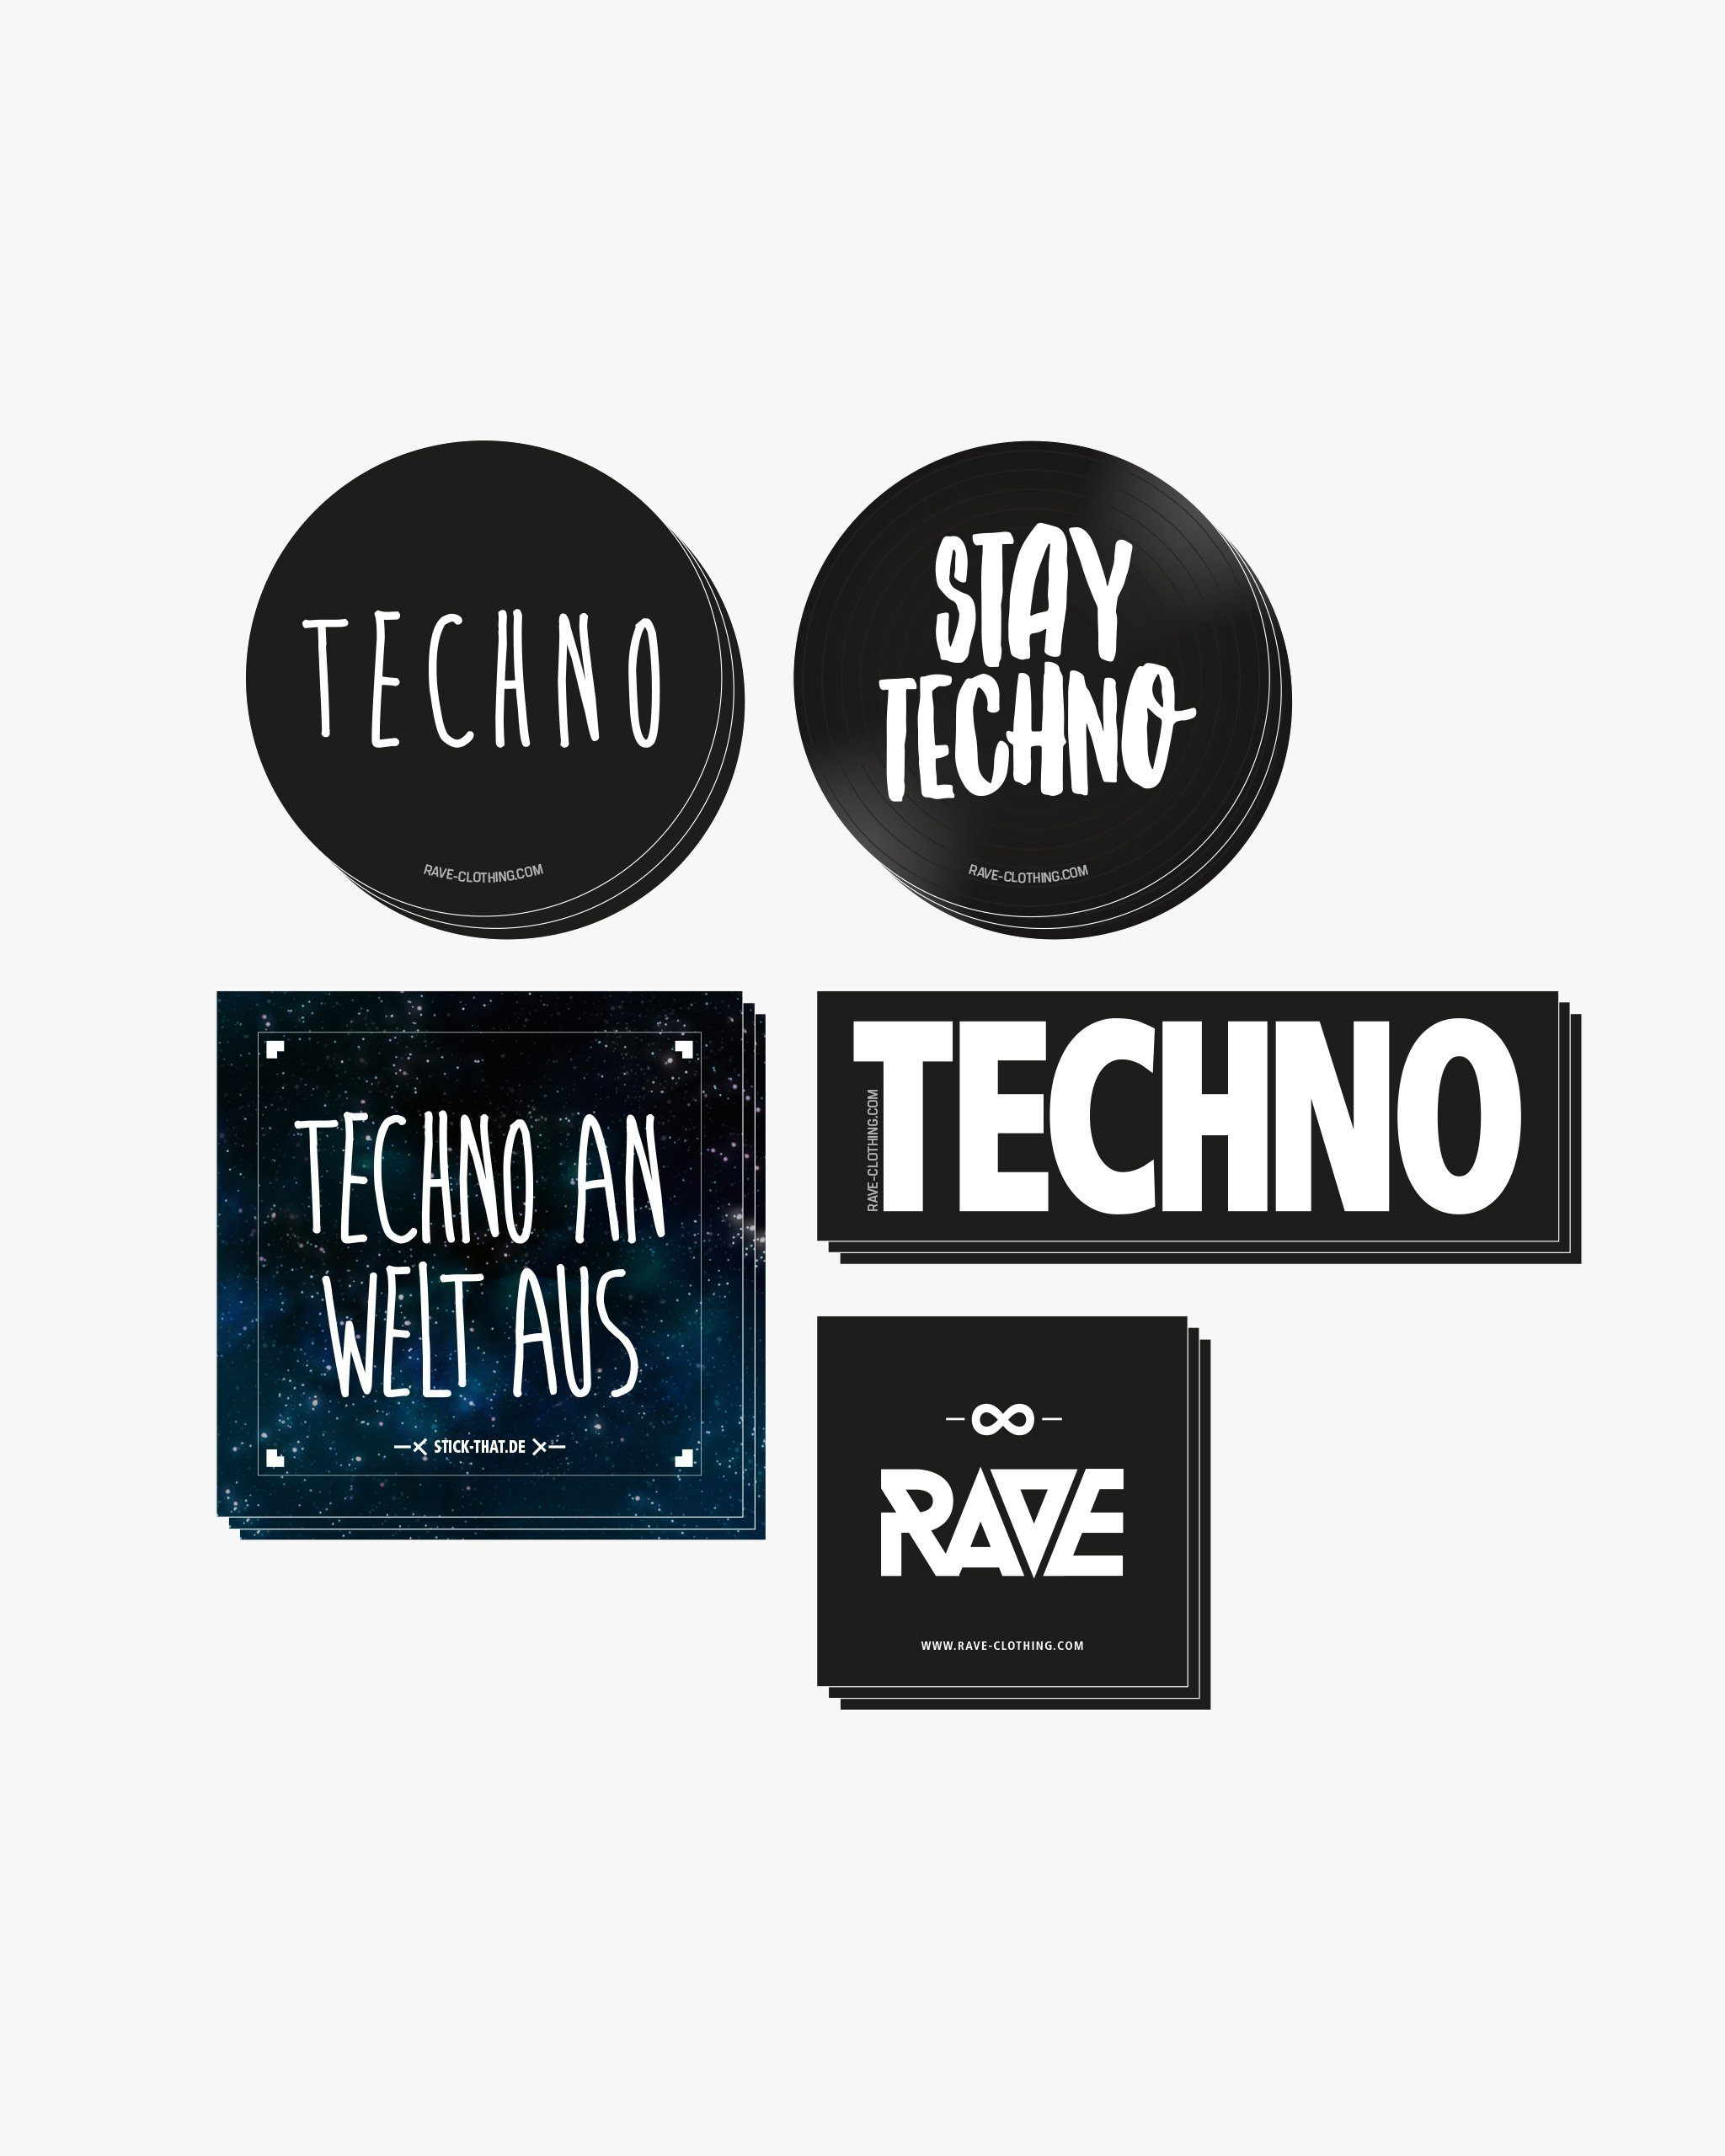 Techno sticker set by RAVE Clothing with different techno stickers. Including techno circle stickers, stay techno stickers, techno an world from stickers, rave stickers